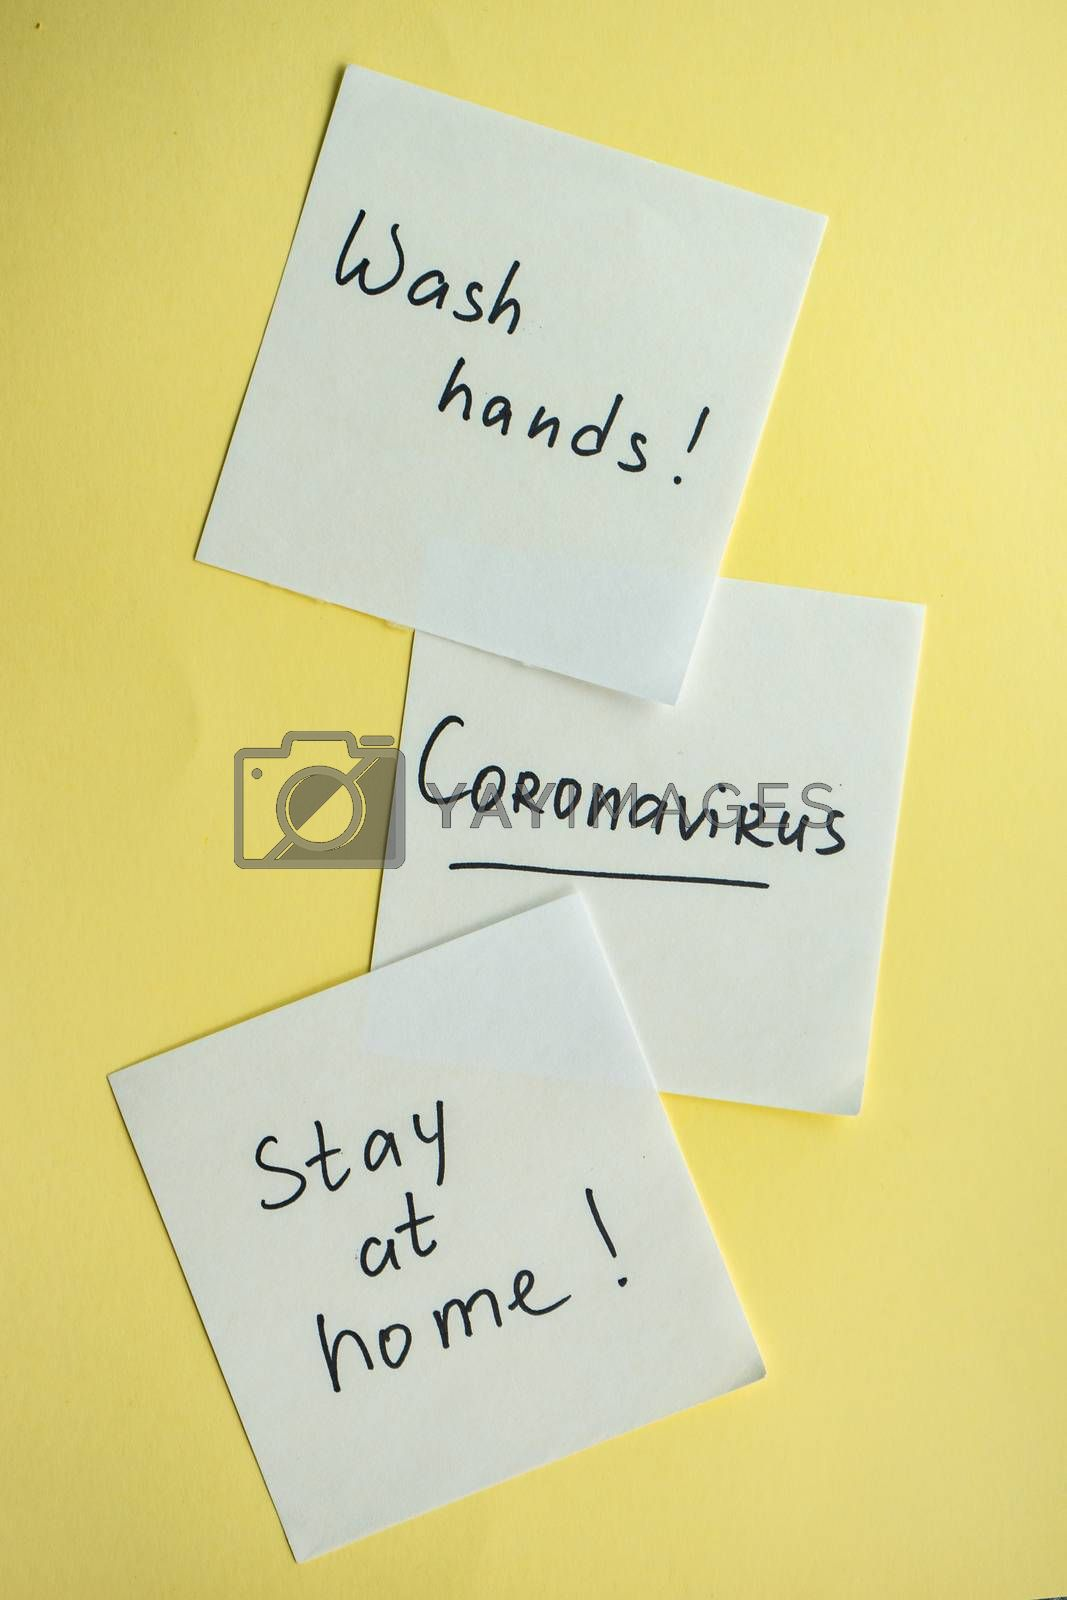 COVID-19 virus concept with notes on pastel yellow background with copy space